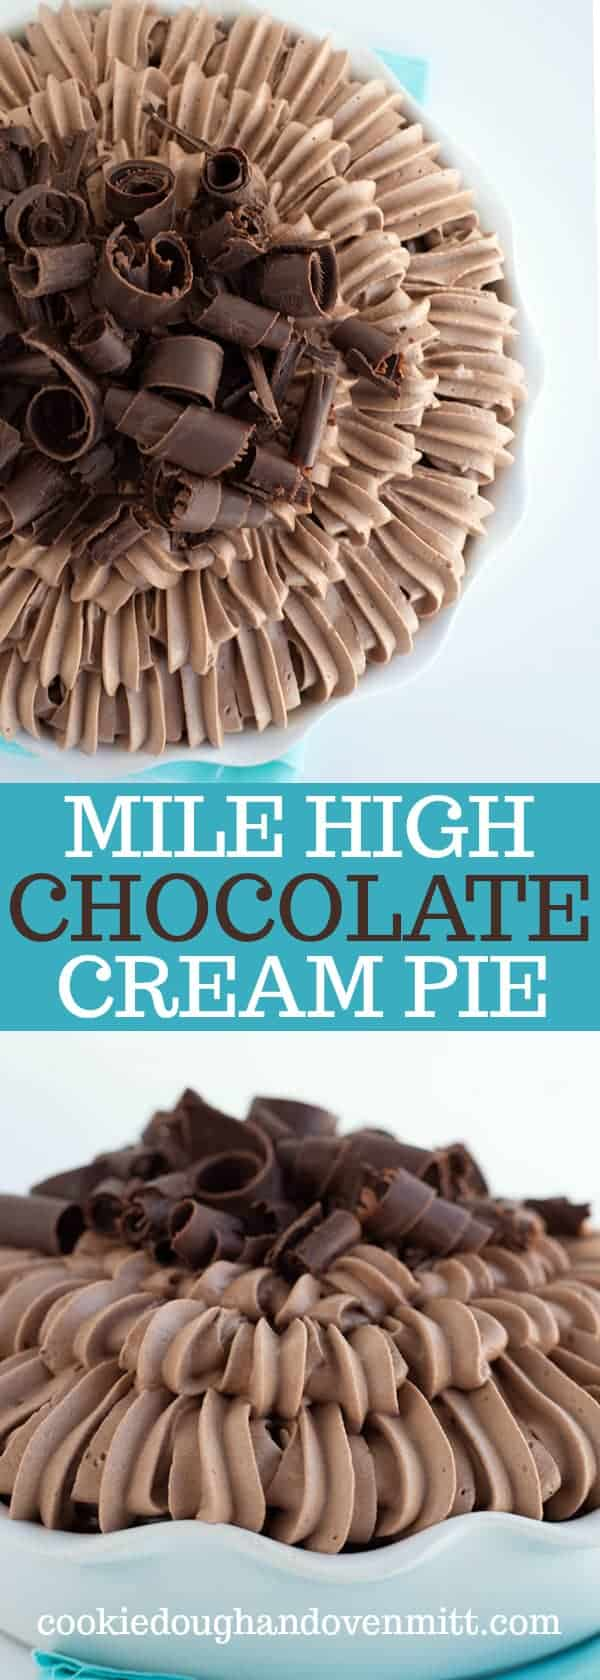 Mile High Chocolate Cream Pie - This is a chocolate lovers cream. It's an easy chocolate cream pie loaded with a chocolate cookie crust, a ganache layer, a chocolate french silk filling, chocolate whipped cream and chocolate curls. This makes the perfect pie for Valentine's day or any occasion!